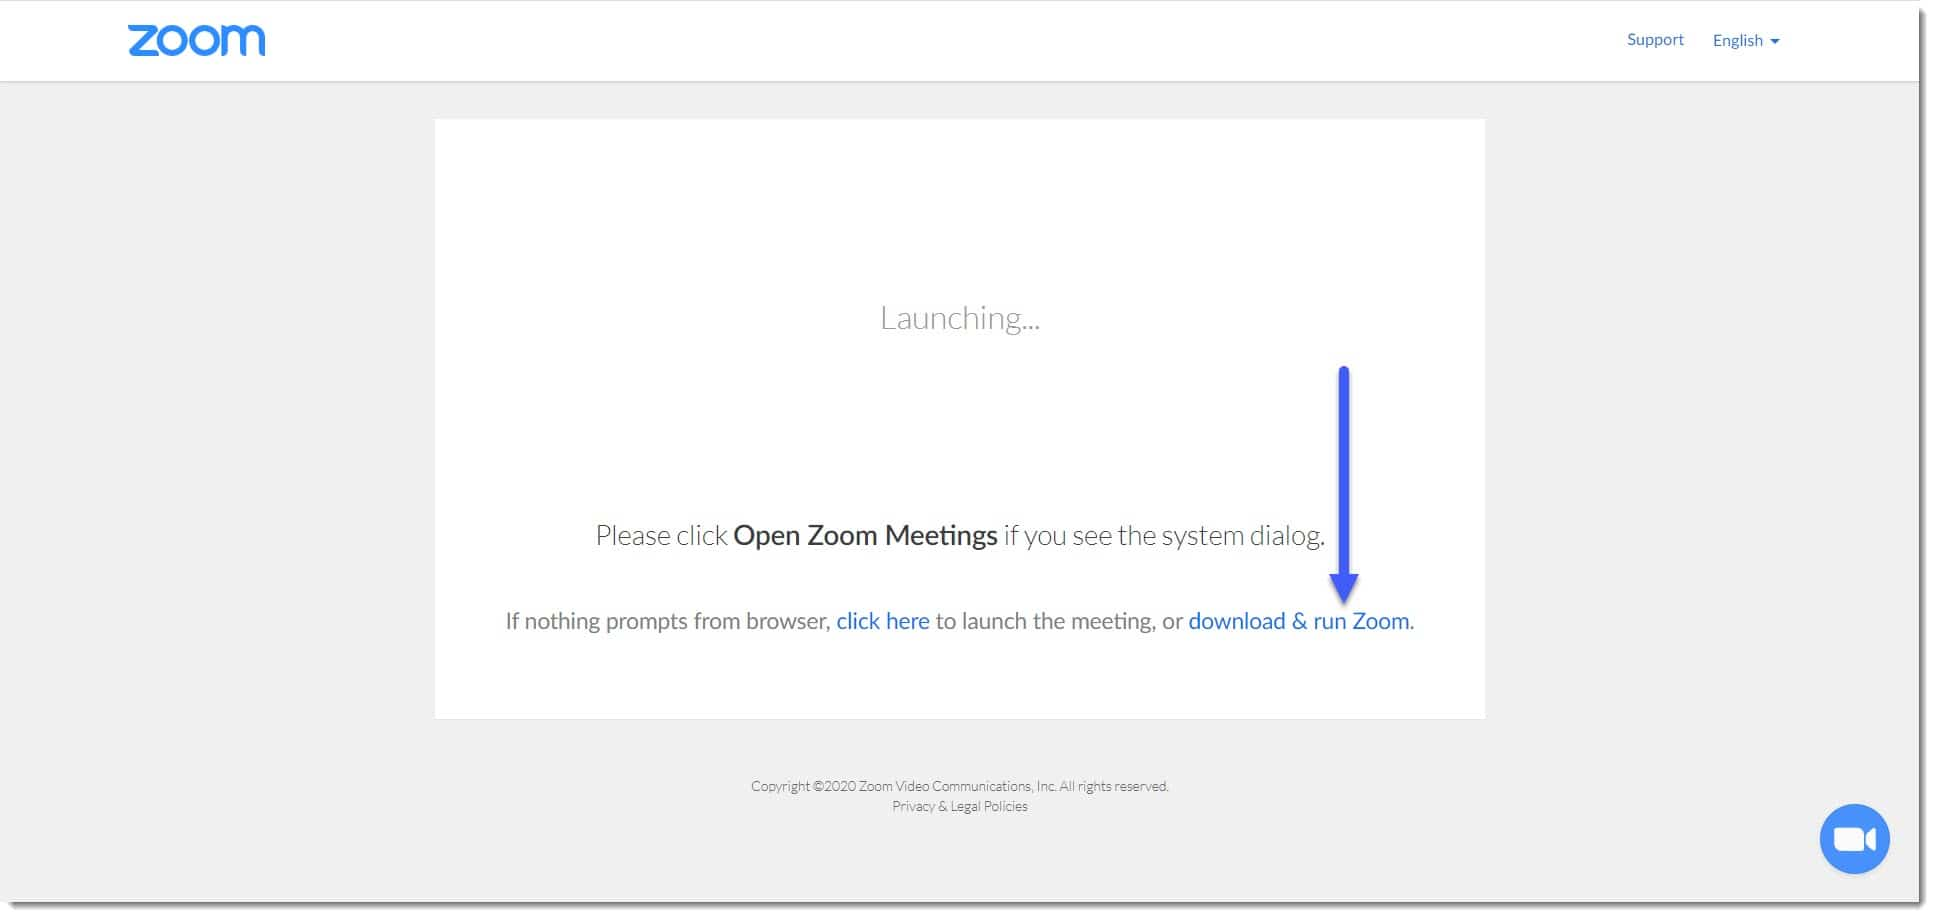 opening-zoom-meeting-from-browser